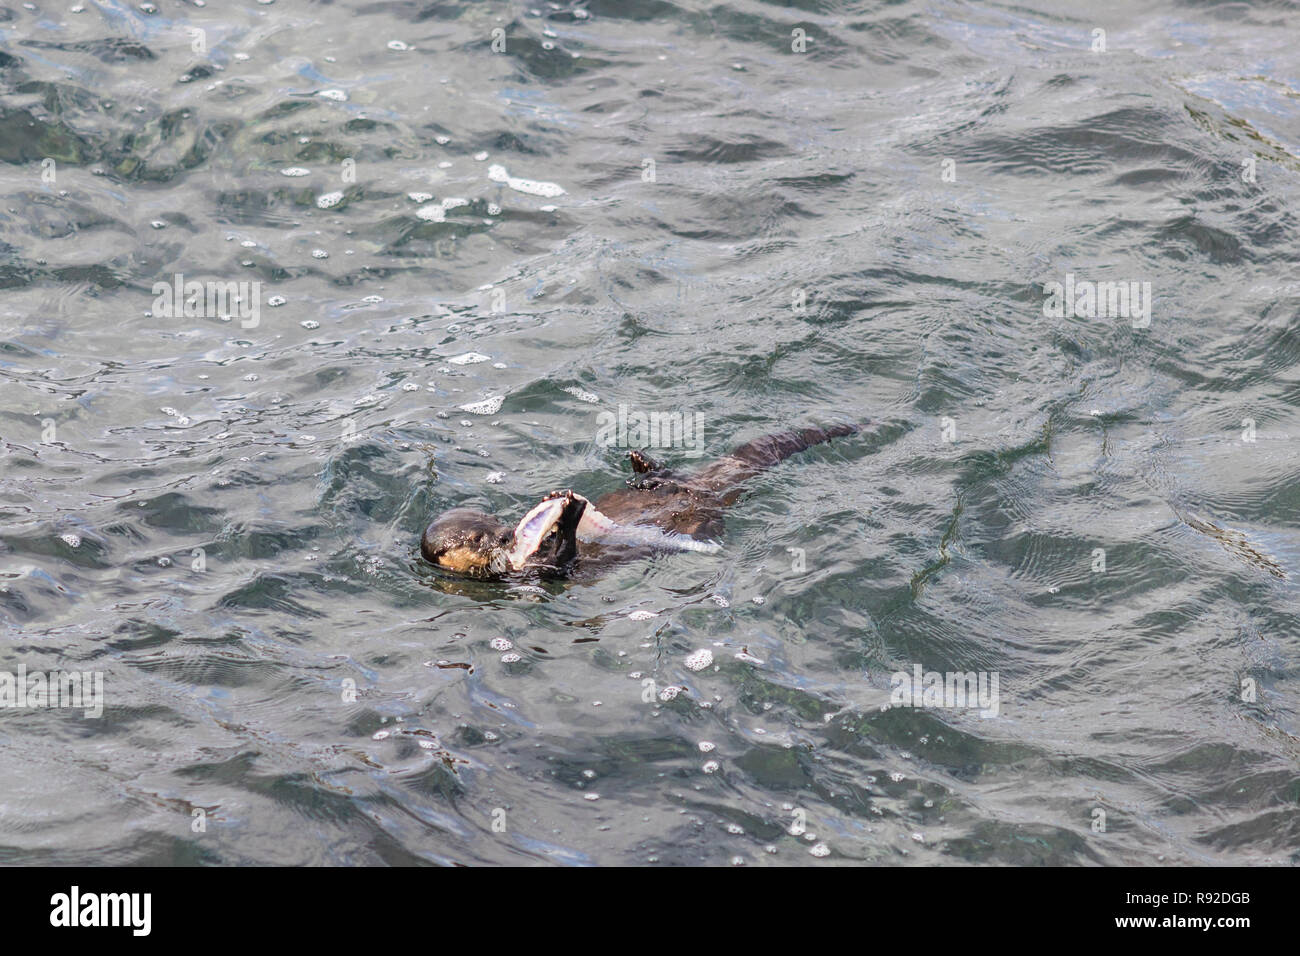 A Marine Otter diving and playing with human dirt on polluted waters at Quintay Pier an old whale fishing village close to Santiago de City - Stock Image